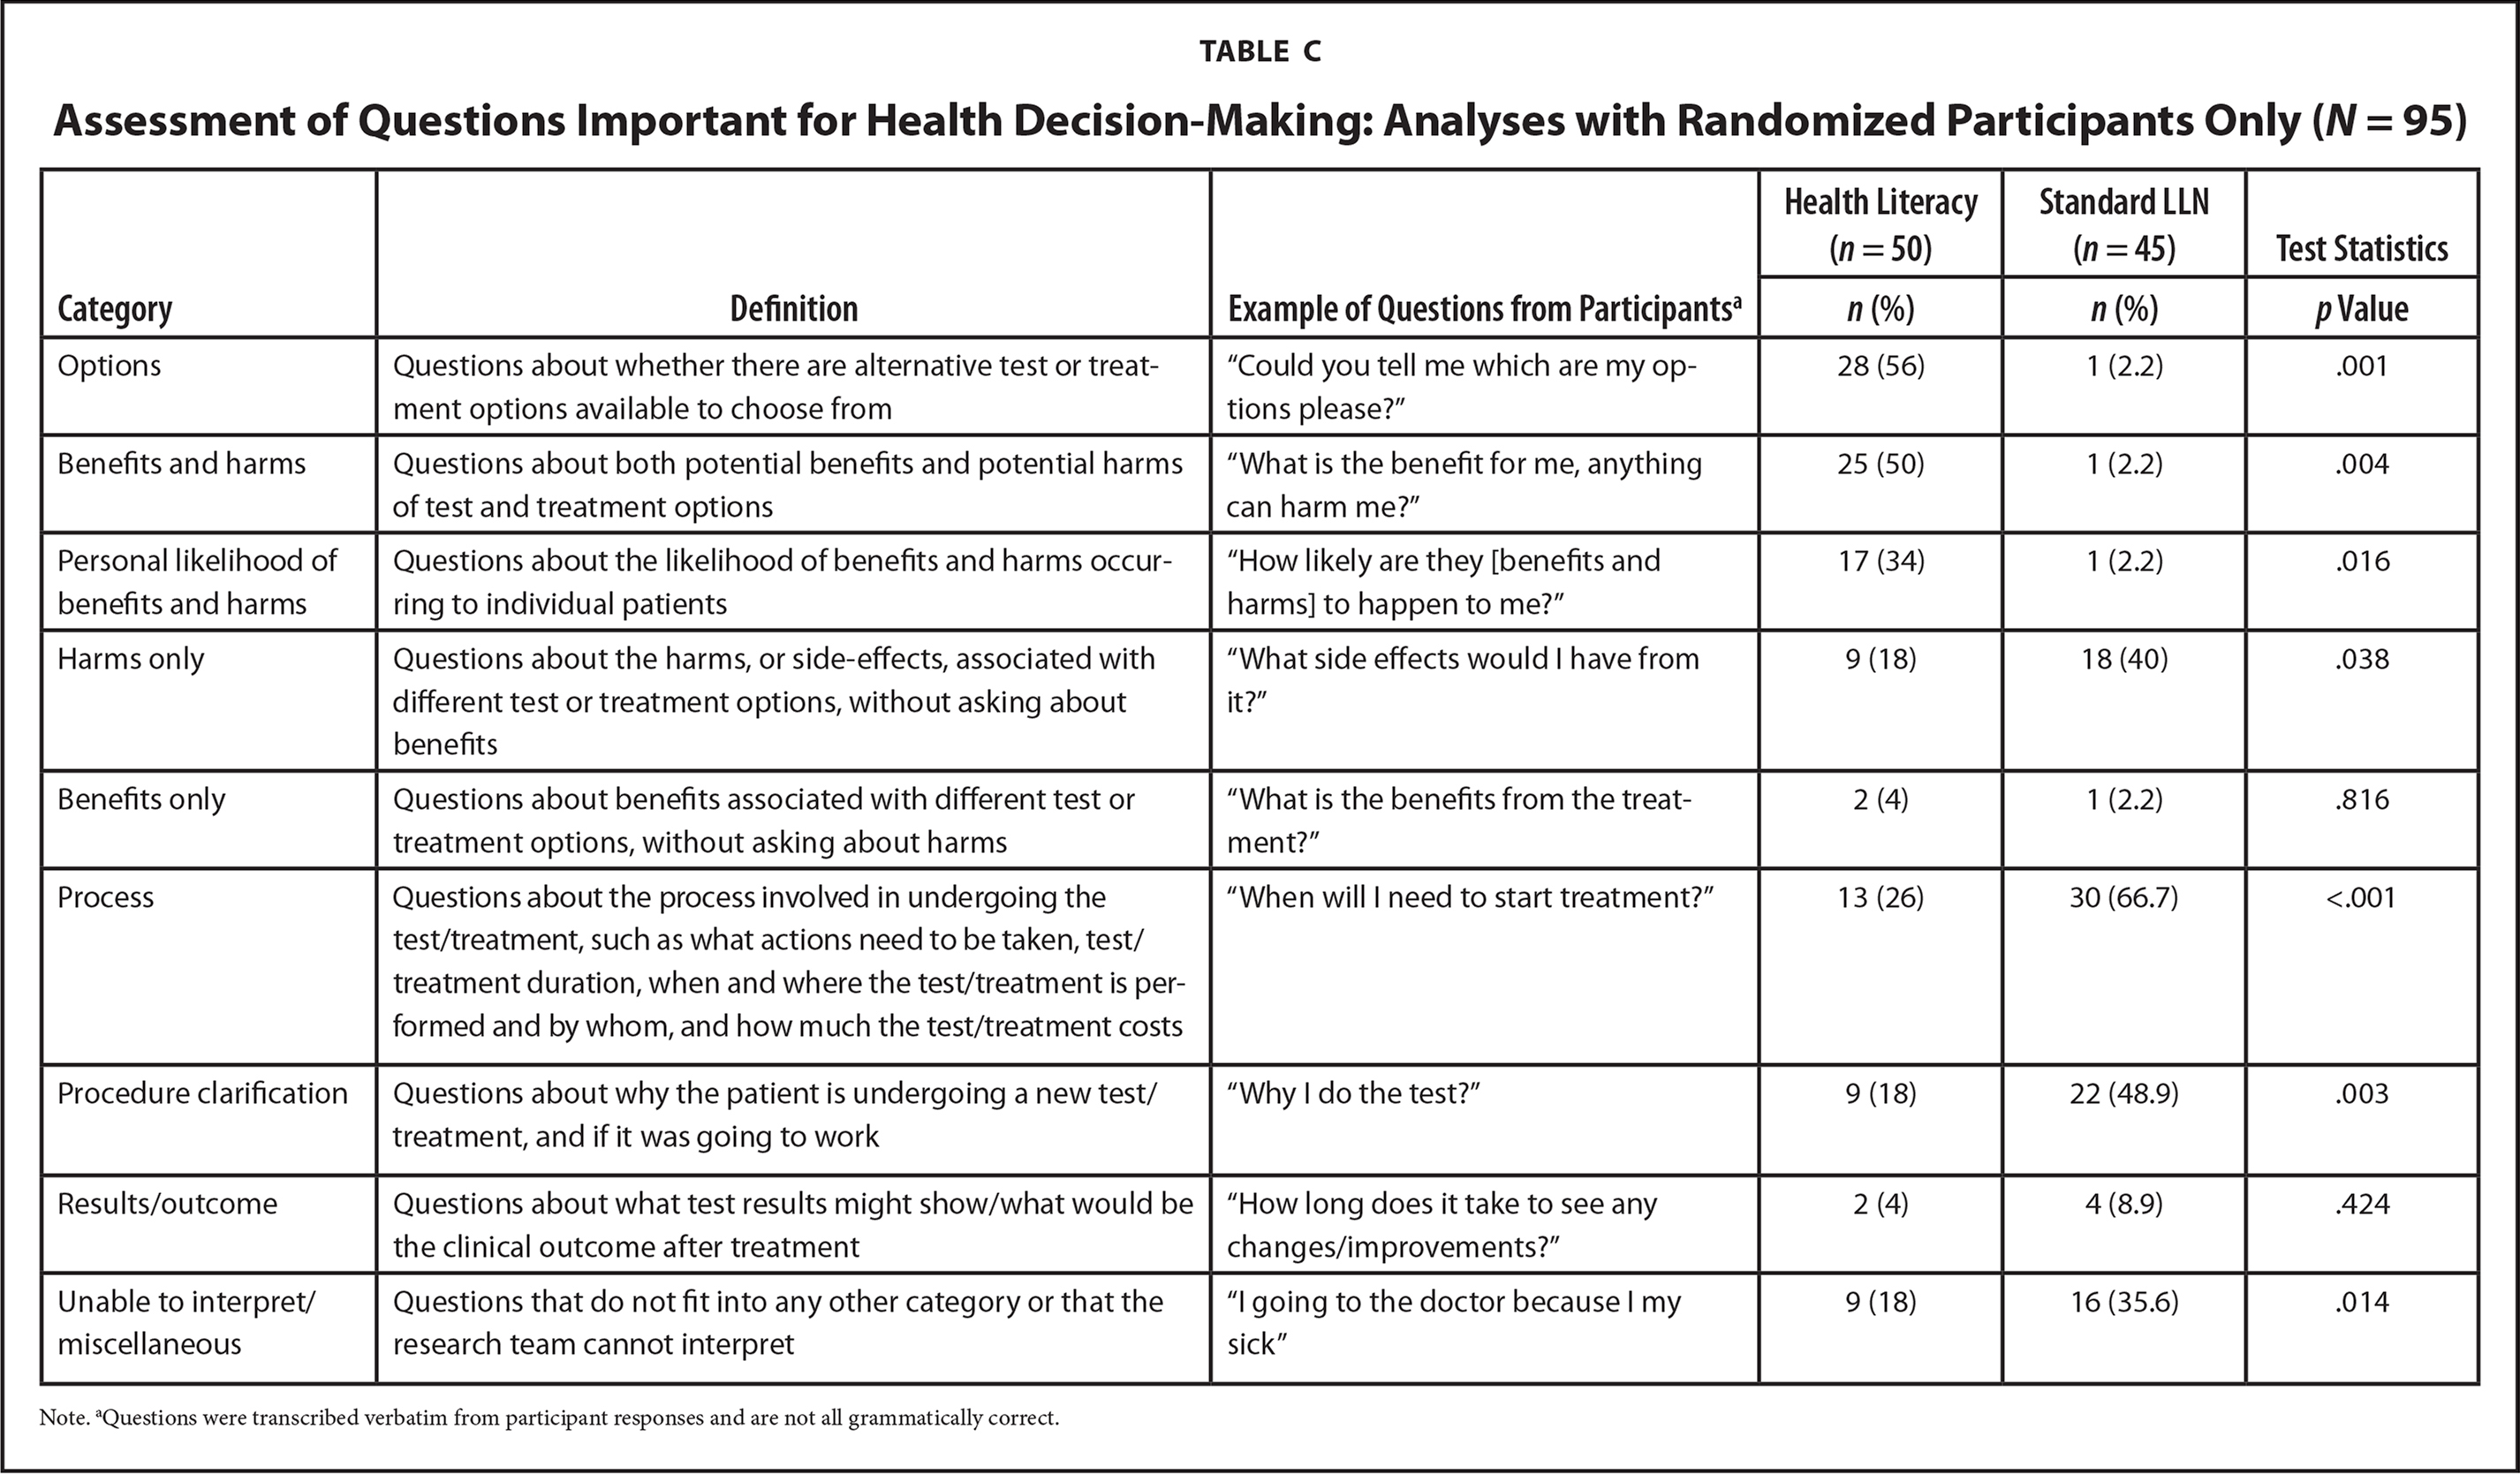 Assessment of Questions Important for Health Decision-Making: Analyses with Randomized Participants Only (N = 95)